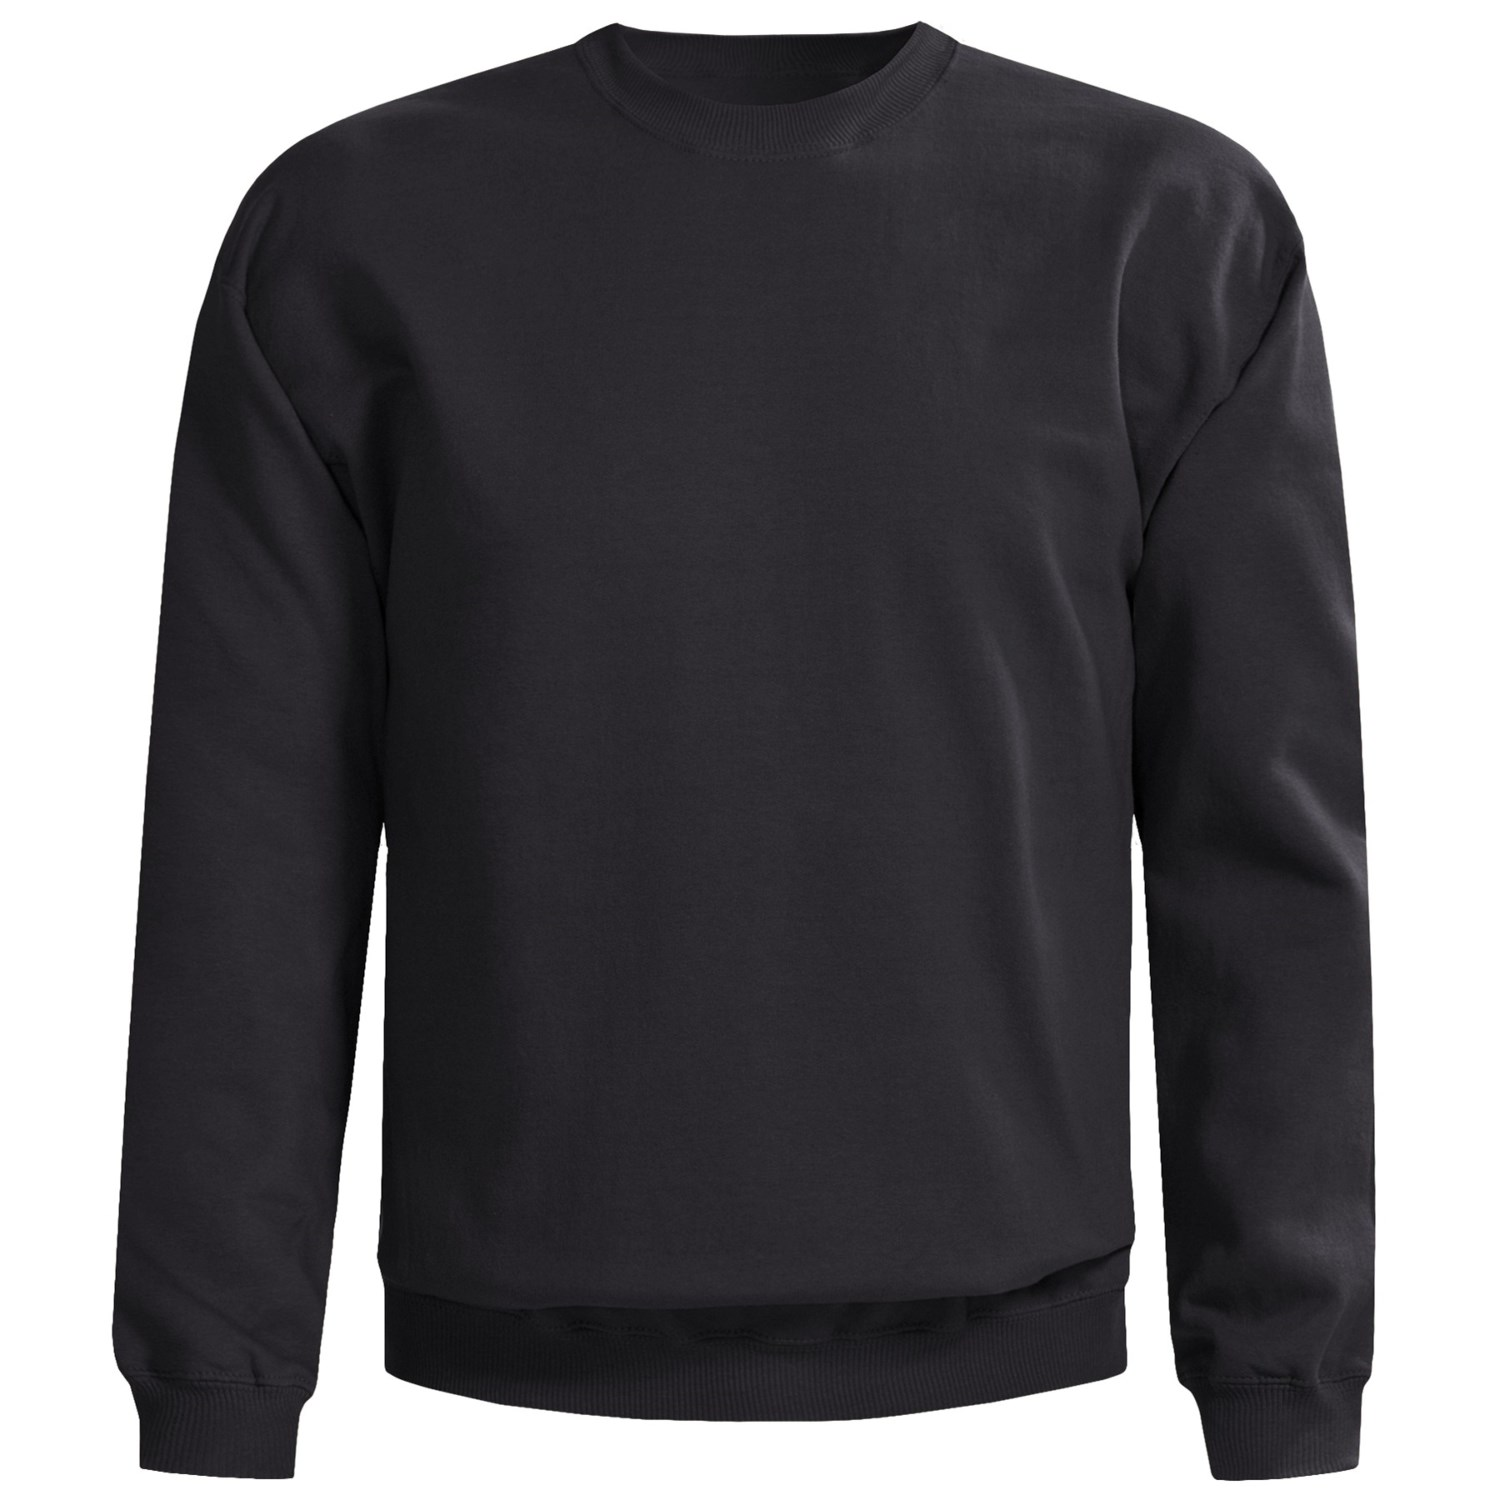 Charcoal Crew Neck Sweater